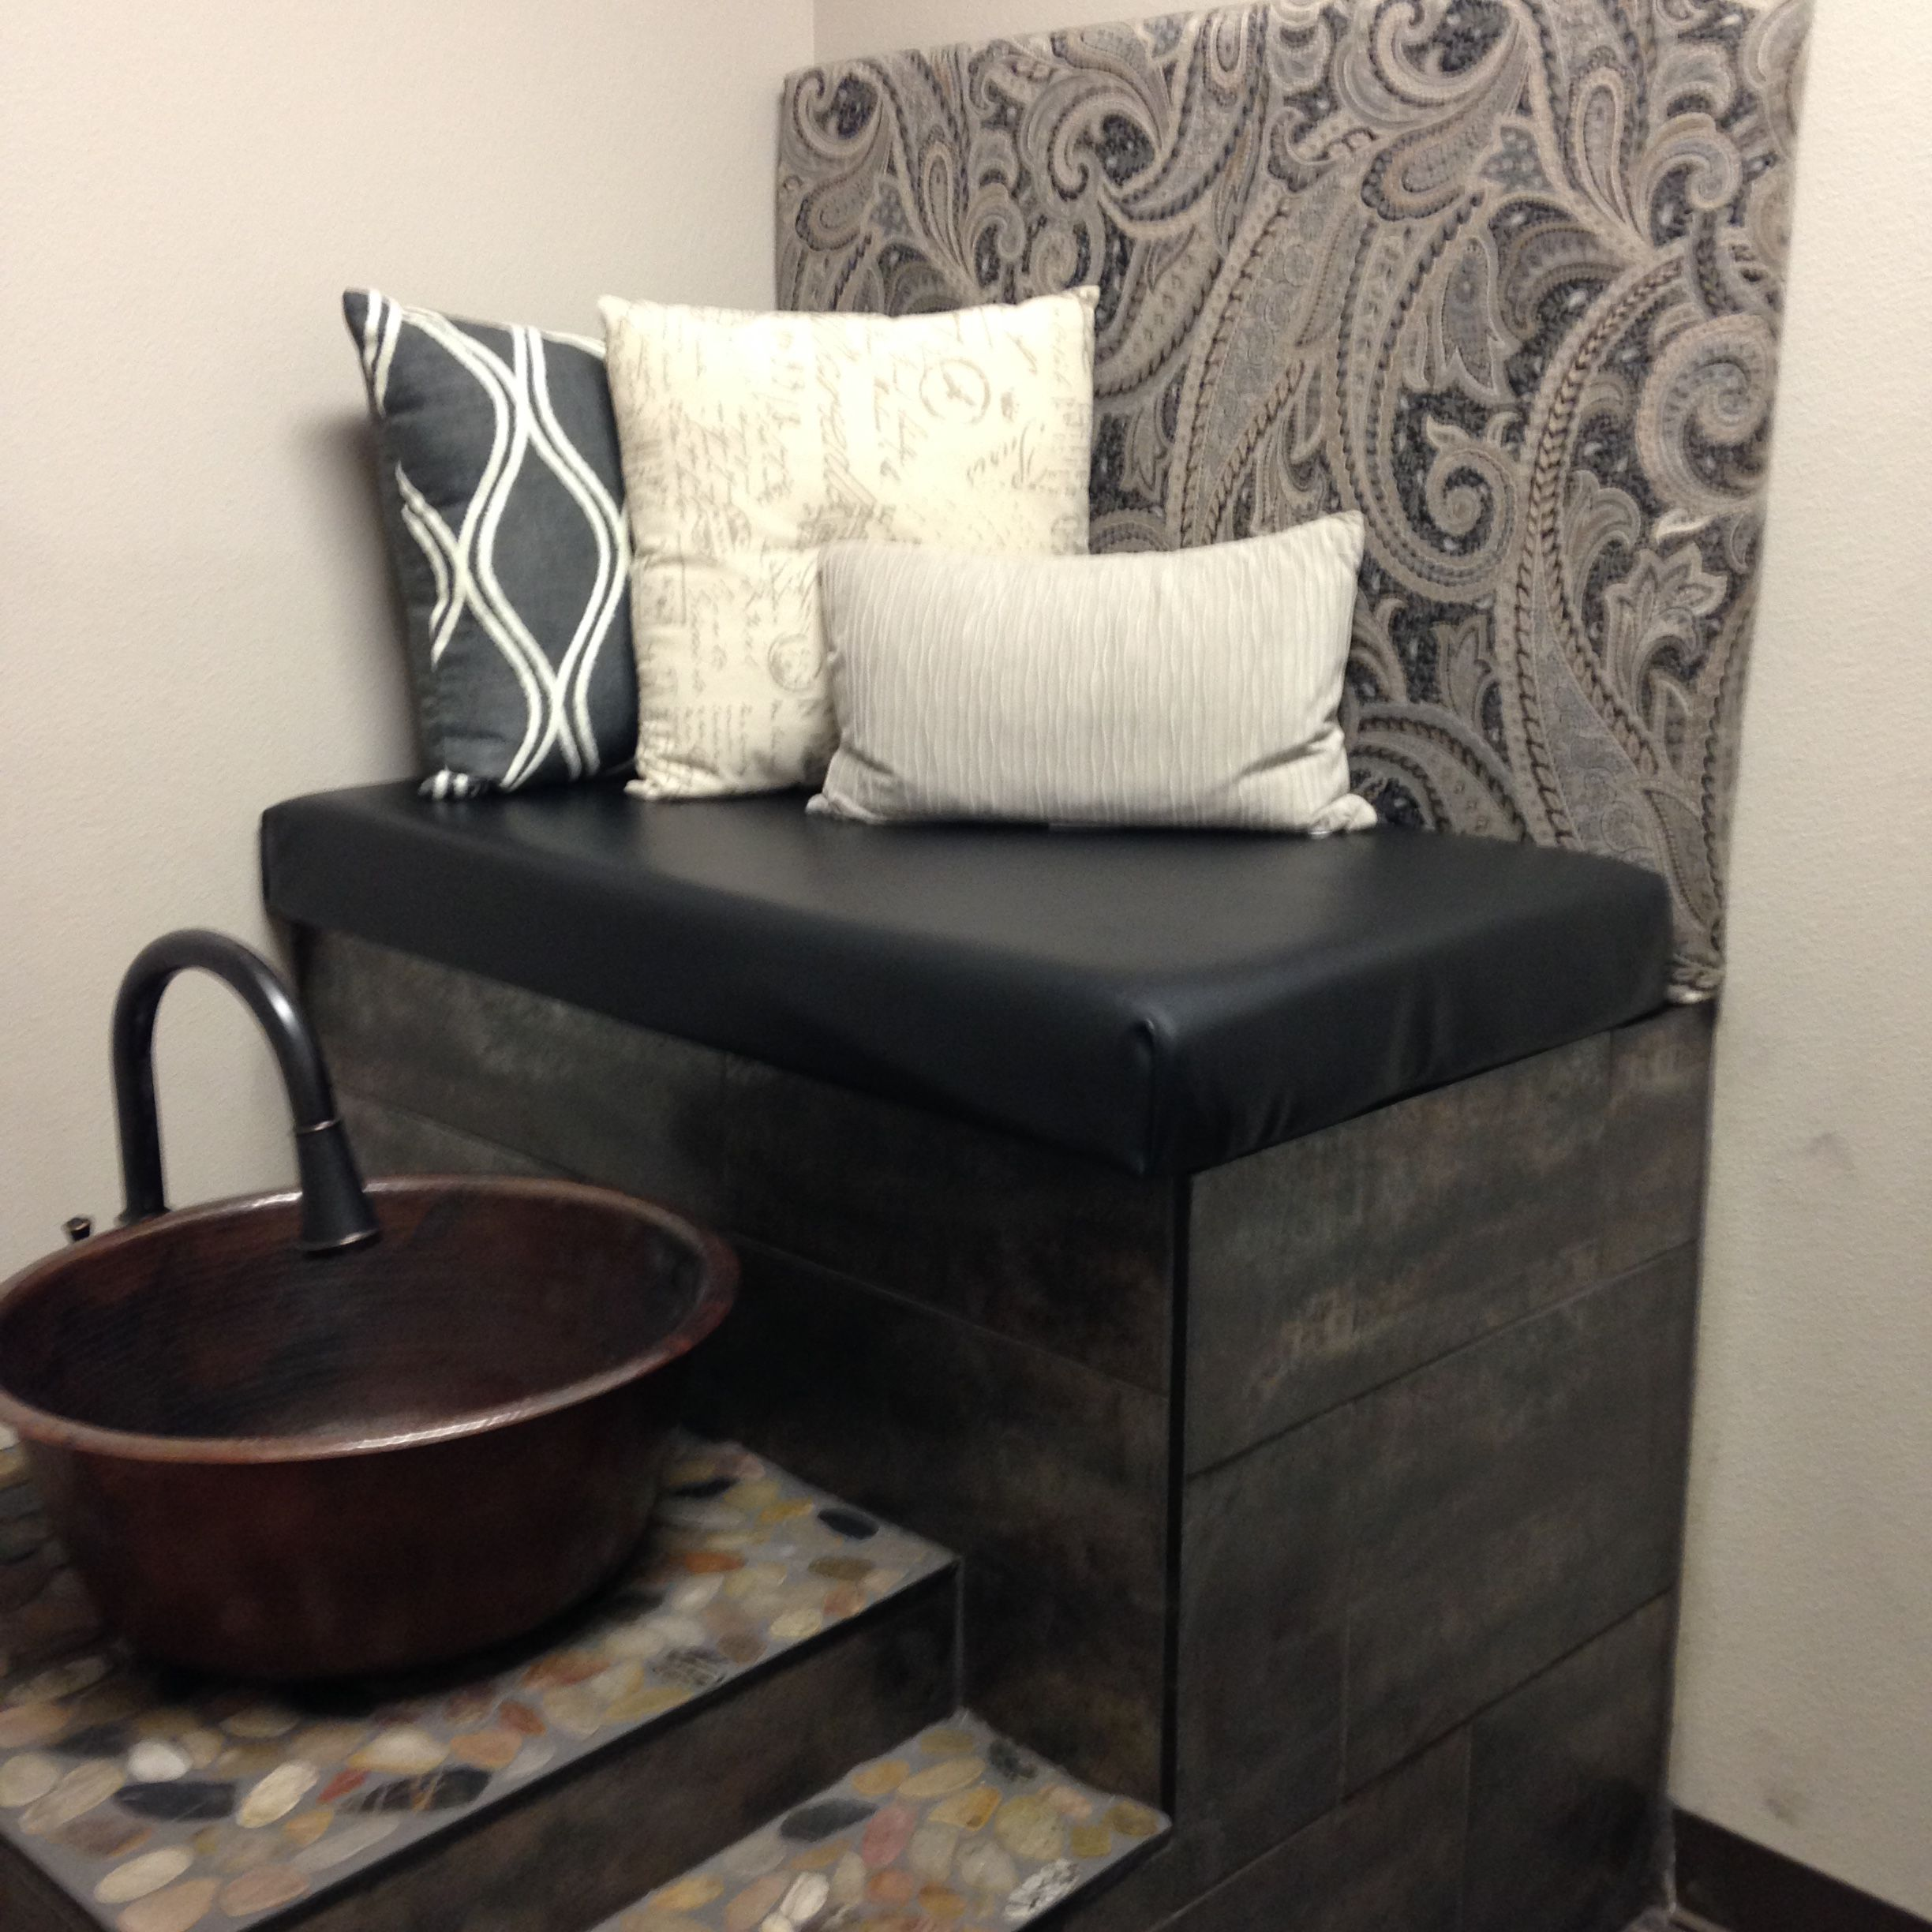 Our finished pedicure station at the salon ! Studio 6 Colorado Springs